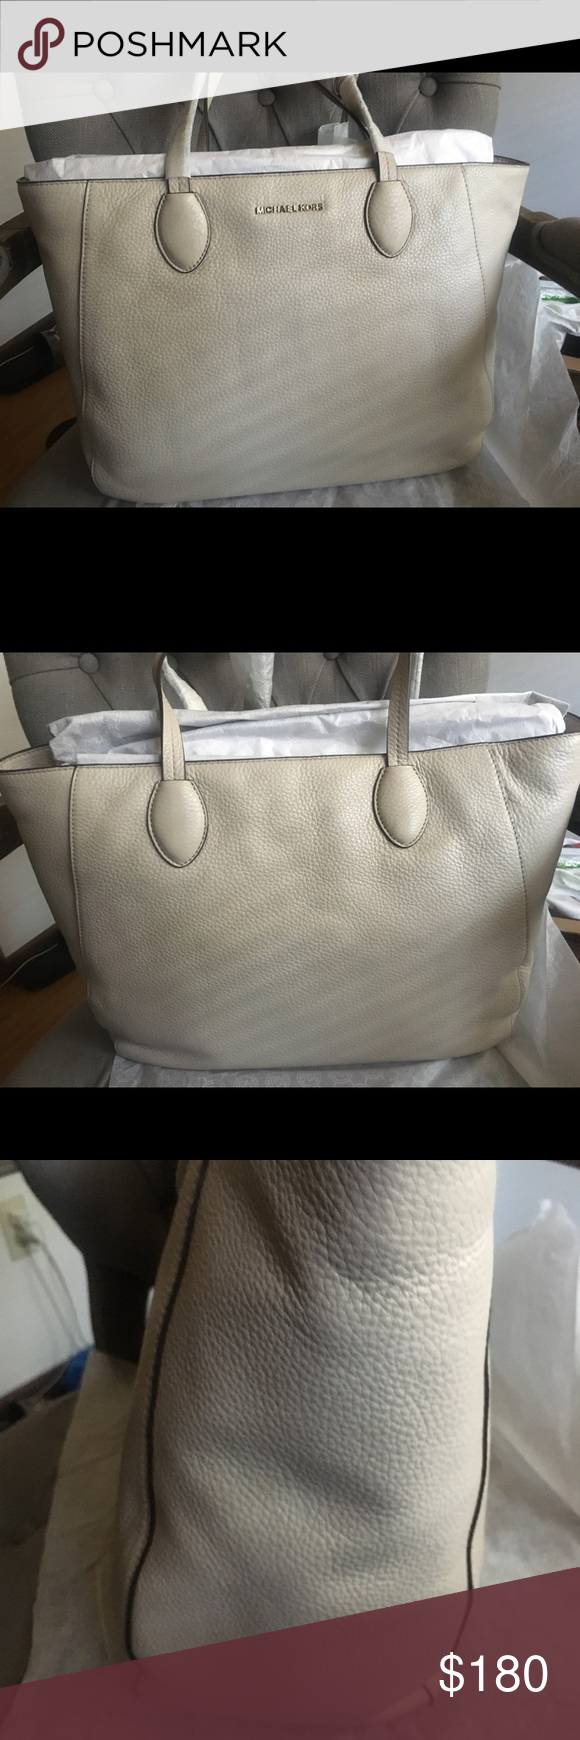 660b166d2ce1 NWT Michael Kors Ani Large Gary Leather Tote New with tags!! I SHIP NEXT  DAY!!! Perfect for fall!!!! Dimensions: 15